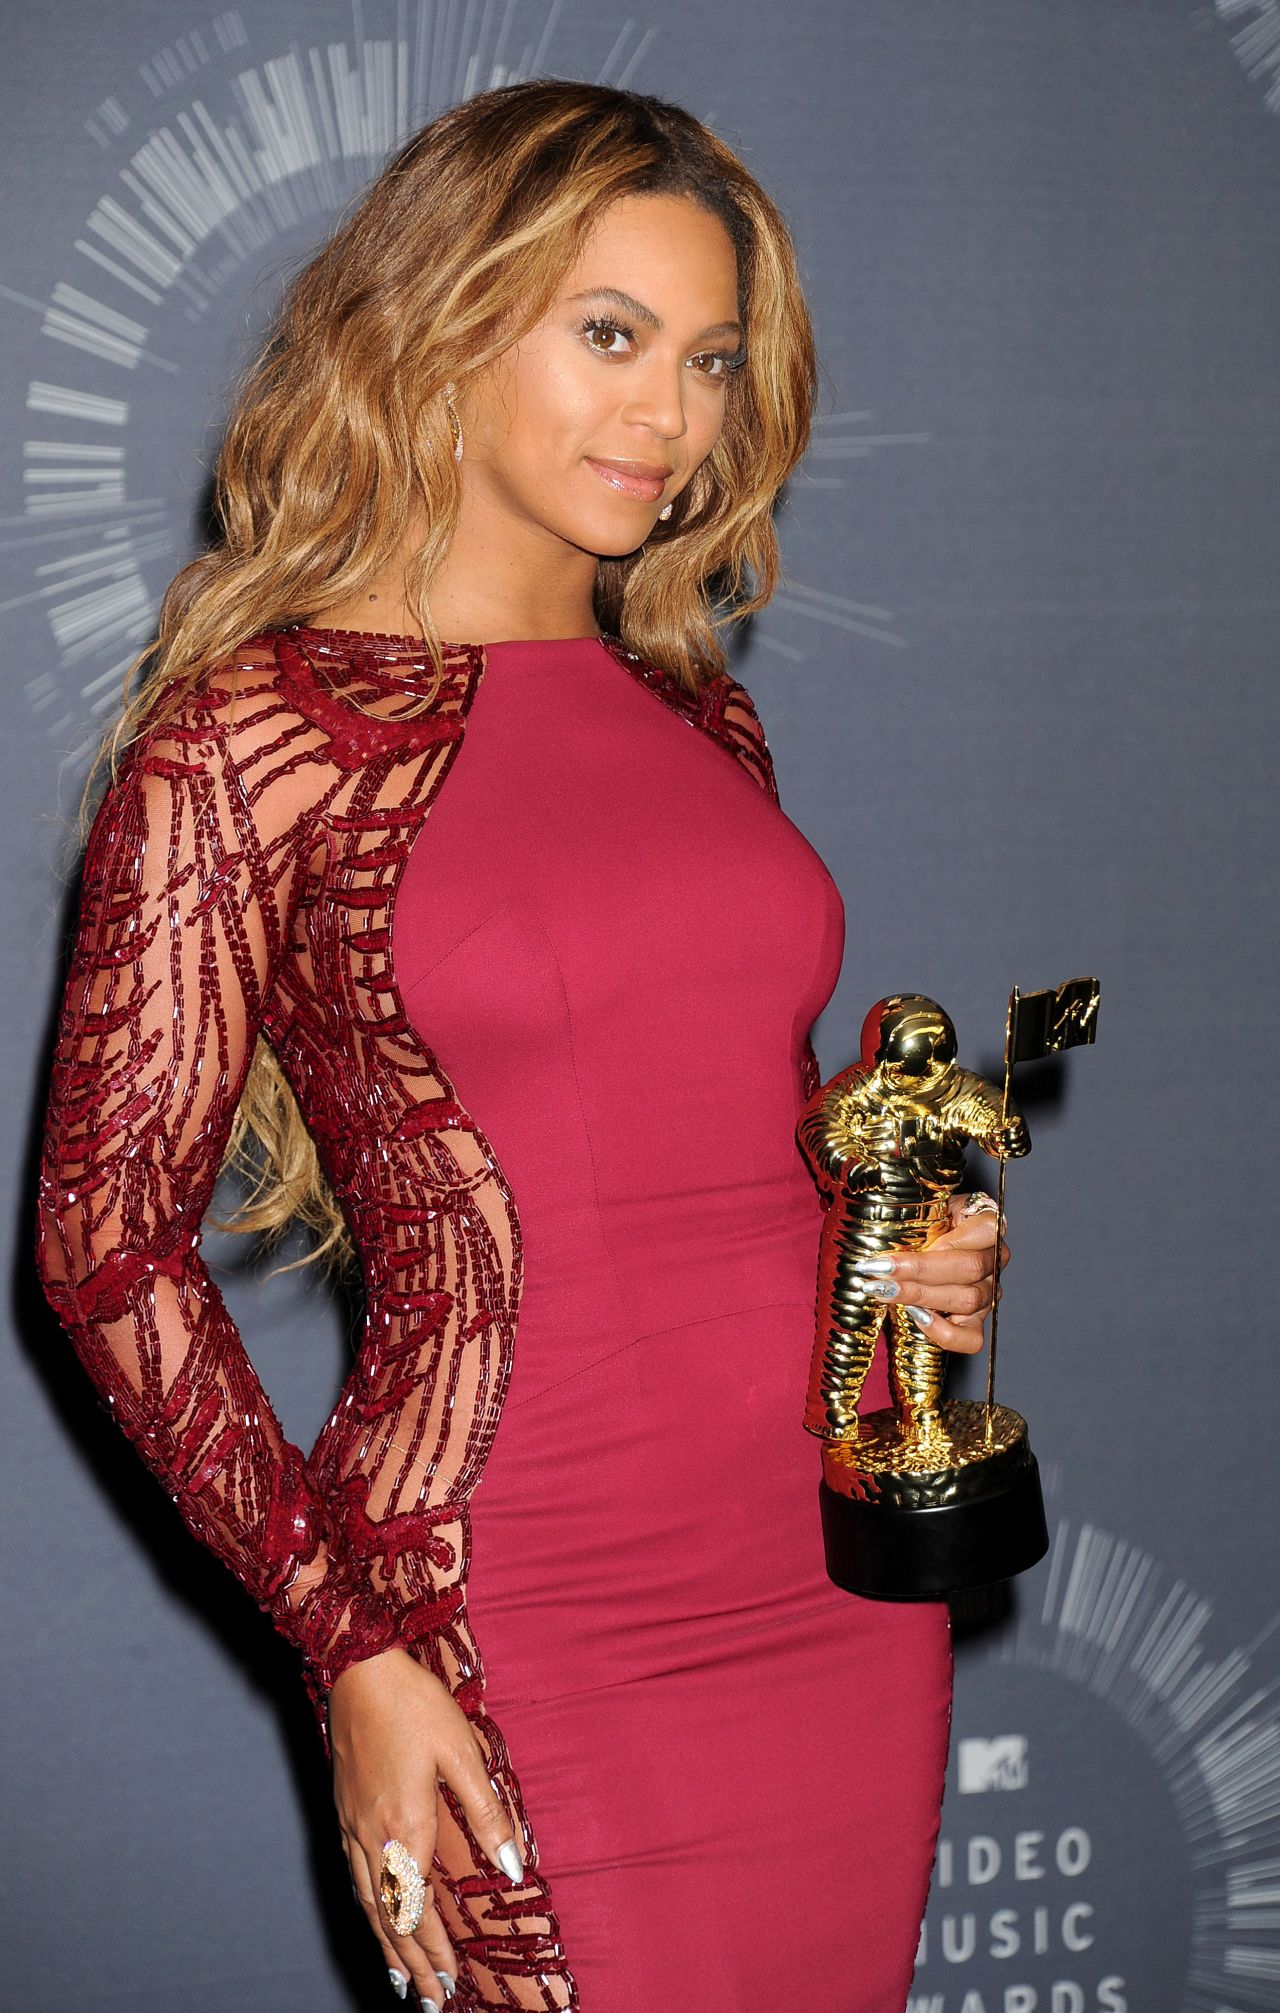 beyonce-2014-mtv-video-music-awards-winner_11.jpg